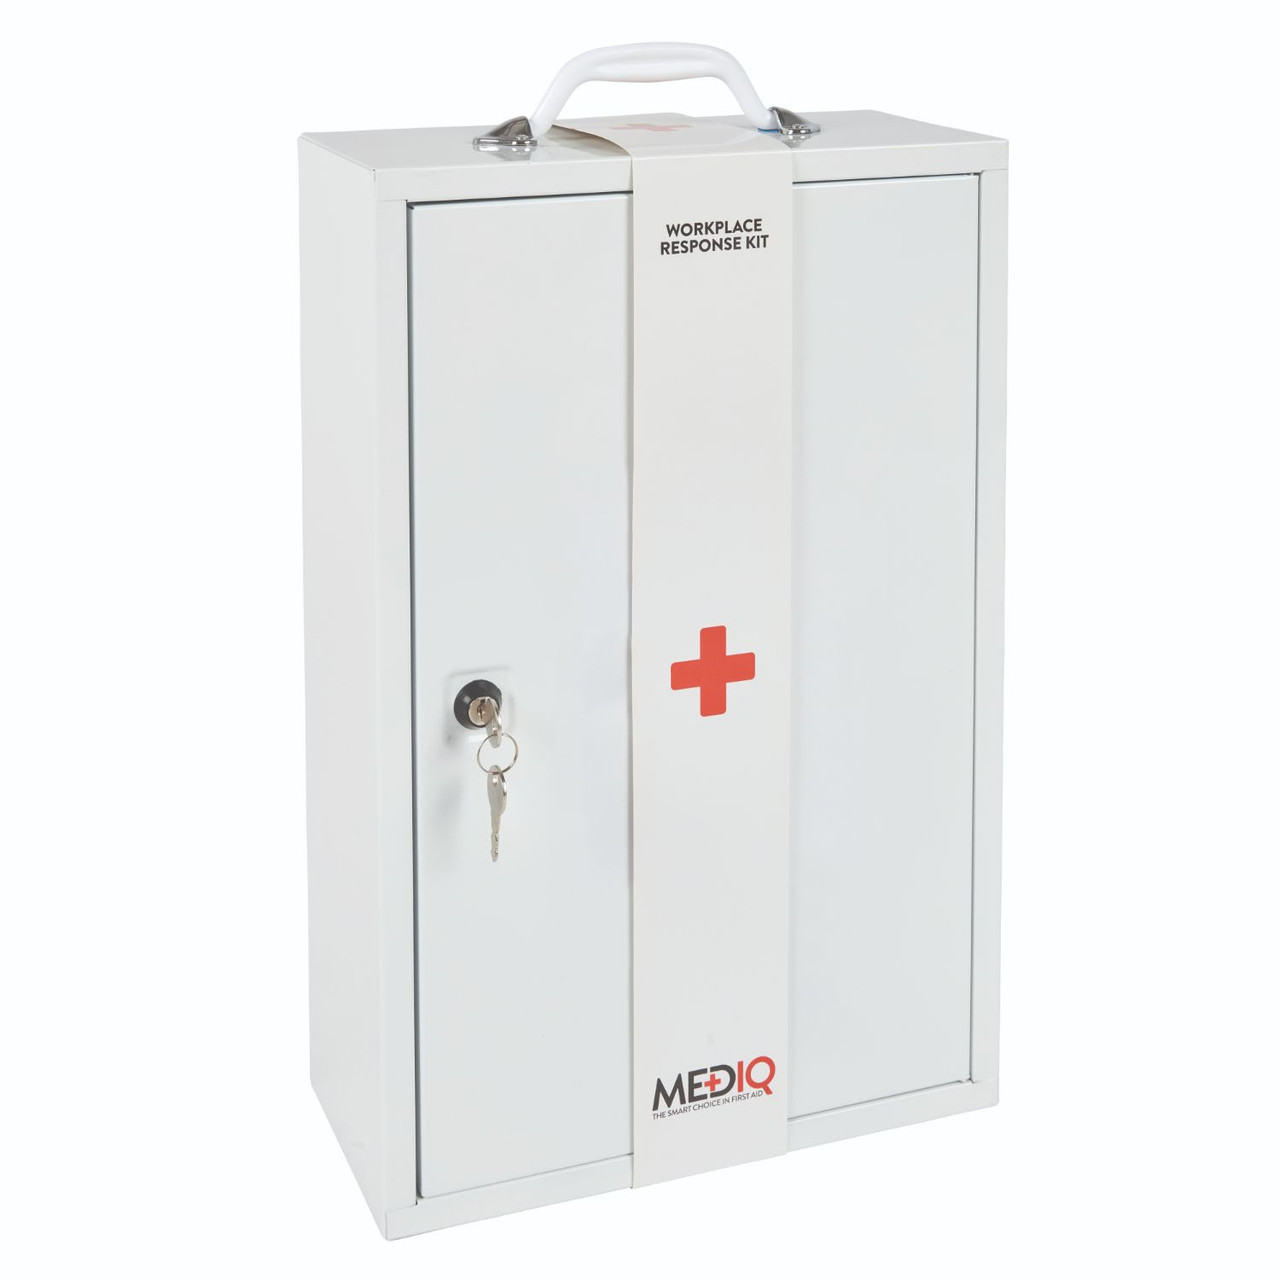 First Aid Kit Workplace wall cabinet 1-25 people low risk MEDIQ